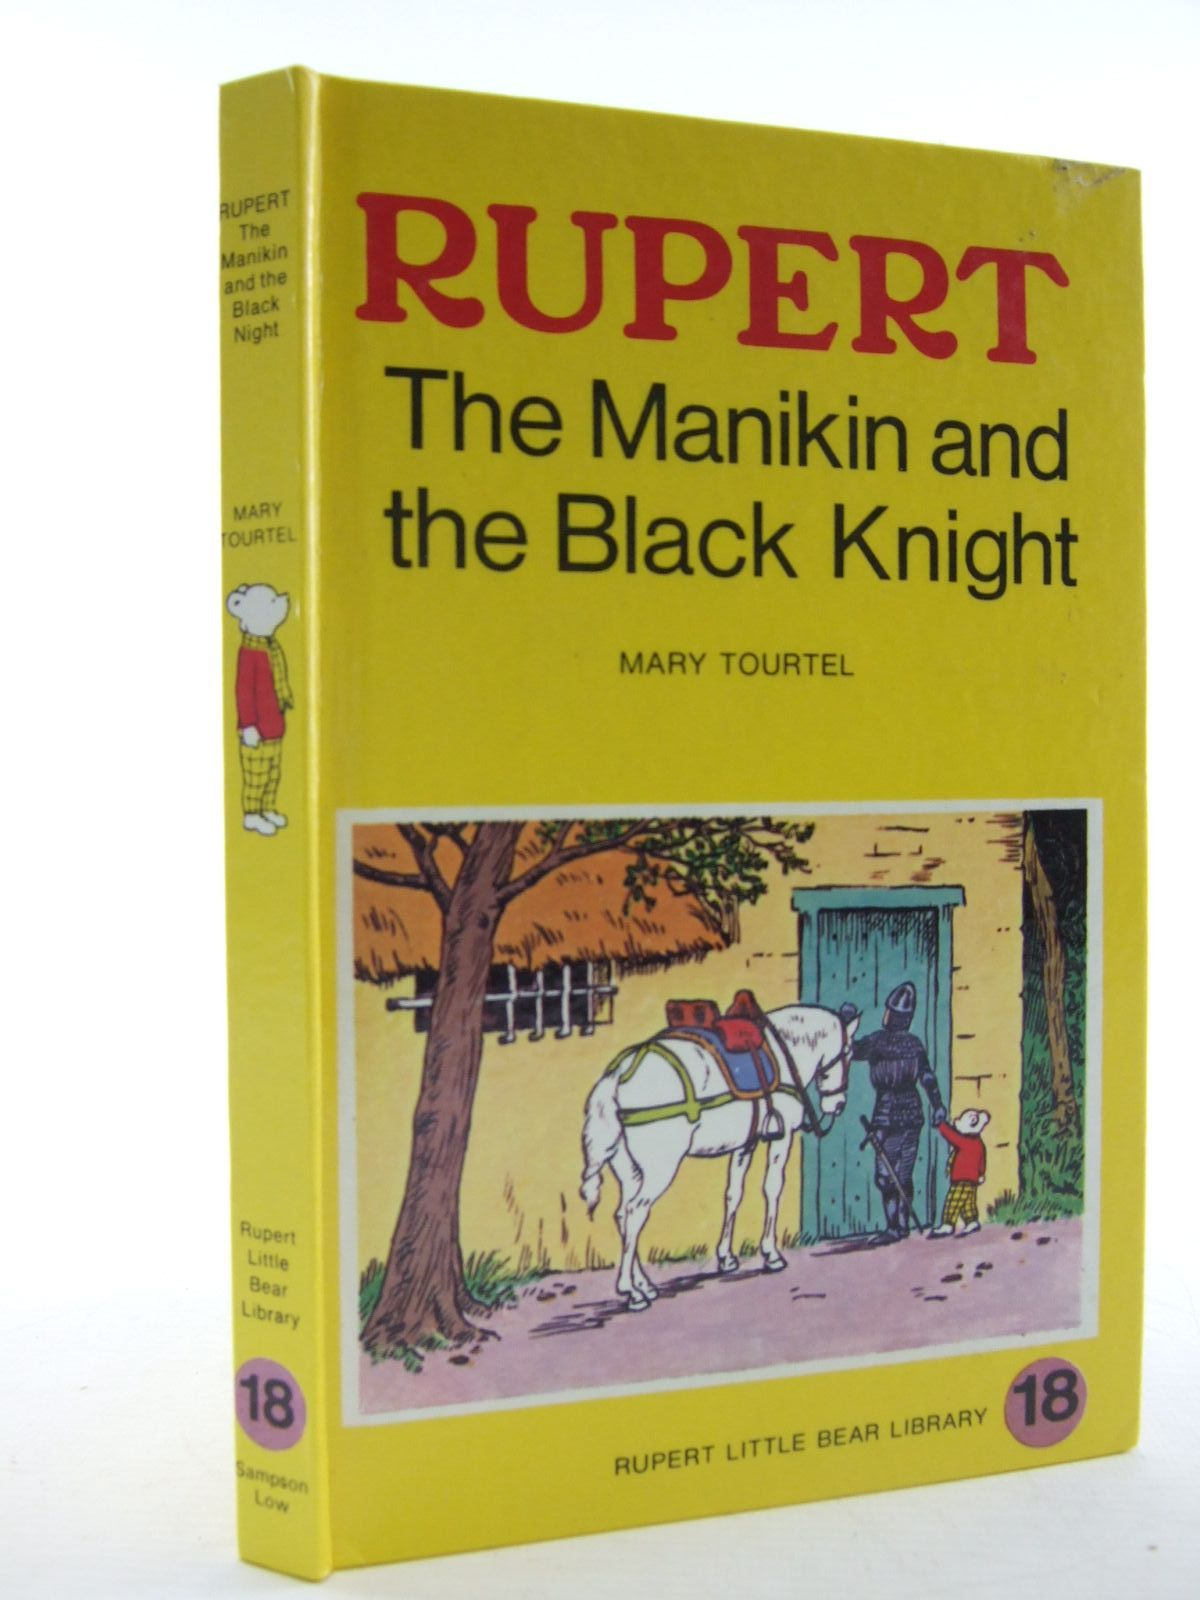 Photo of RUPERT, THE MANIKIN AND THE BLACK KNIGHT - RUPERT LITTLE BEAR LIBRARY No. 18 (WOOLWORTH) written by Tourtel, Mary illustrated by Tourtel, Mary published by Sampson Low, Marston & Co. Ltd. (STOCK CODE: 1108208)  for sale by Stella & Rose's Books